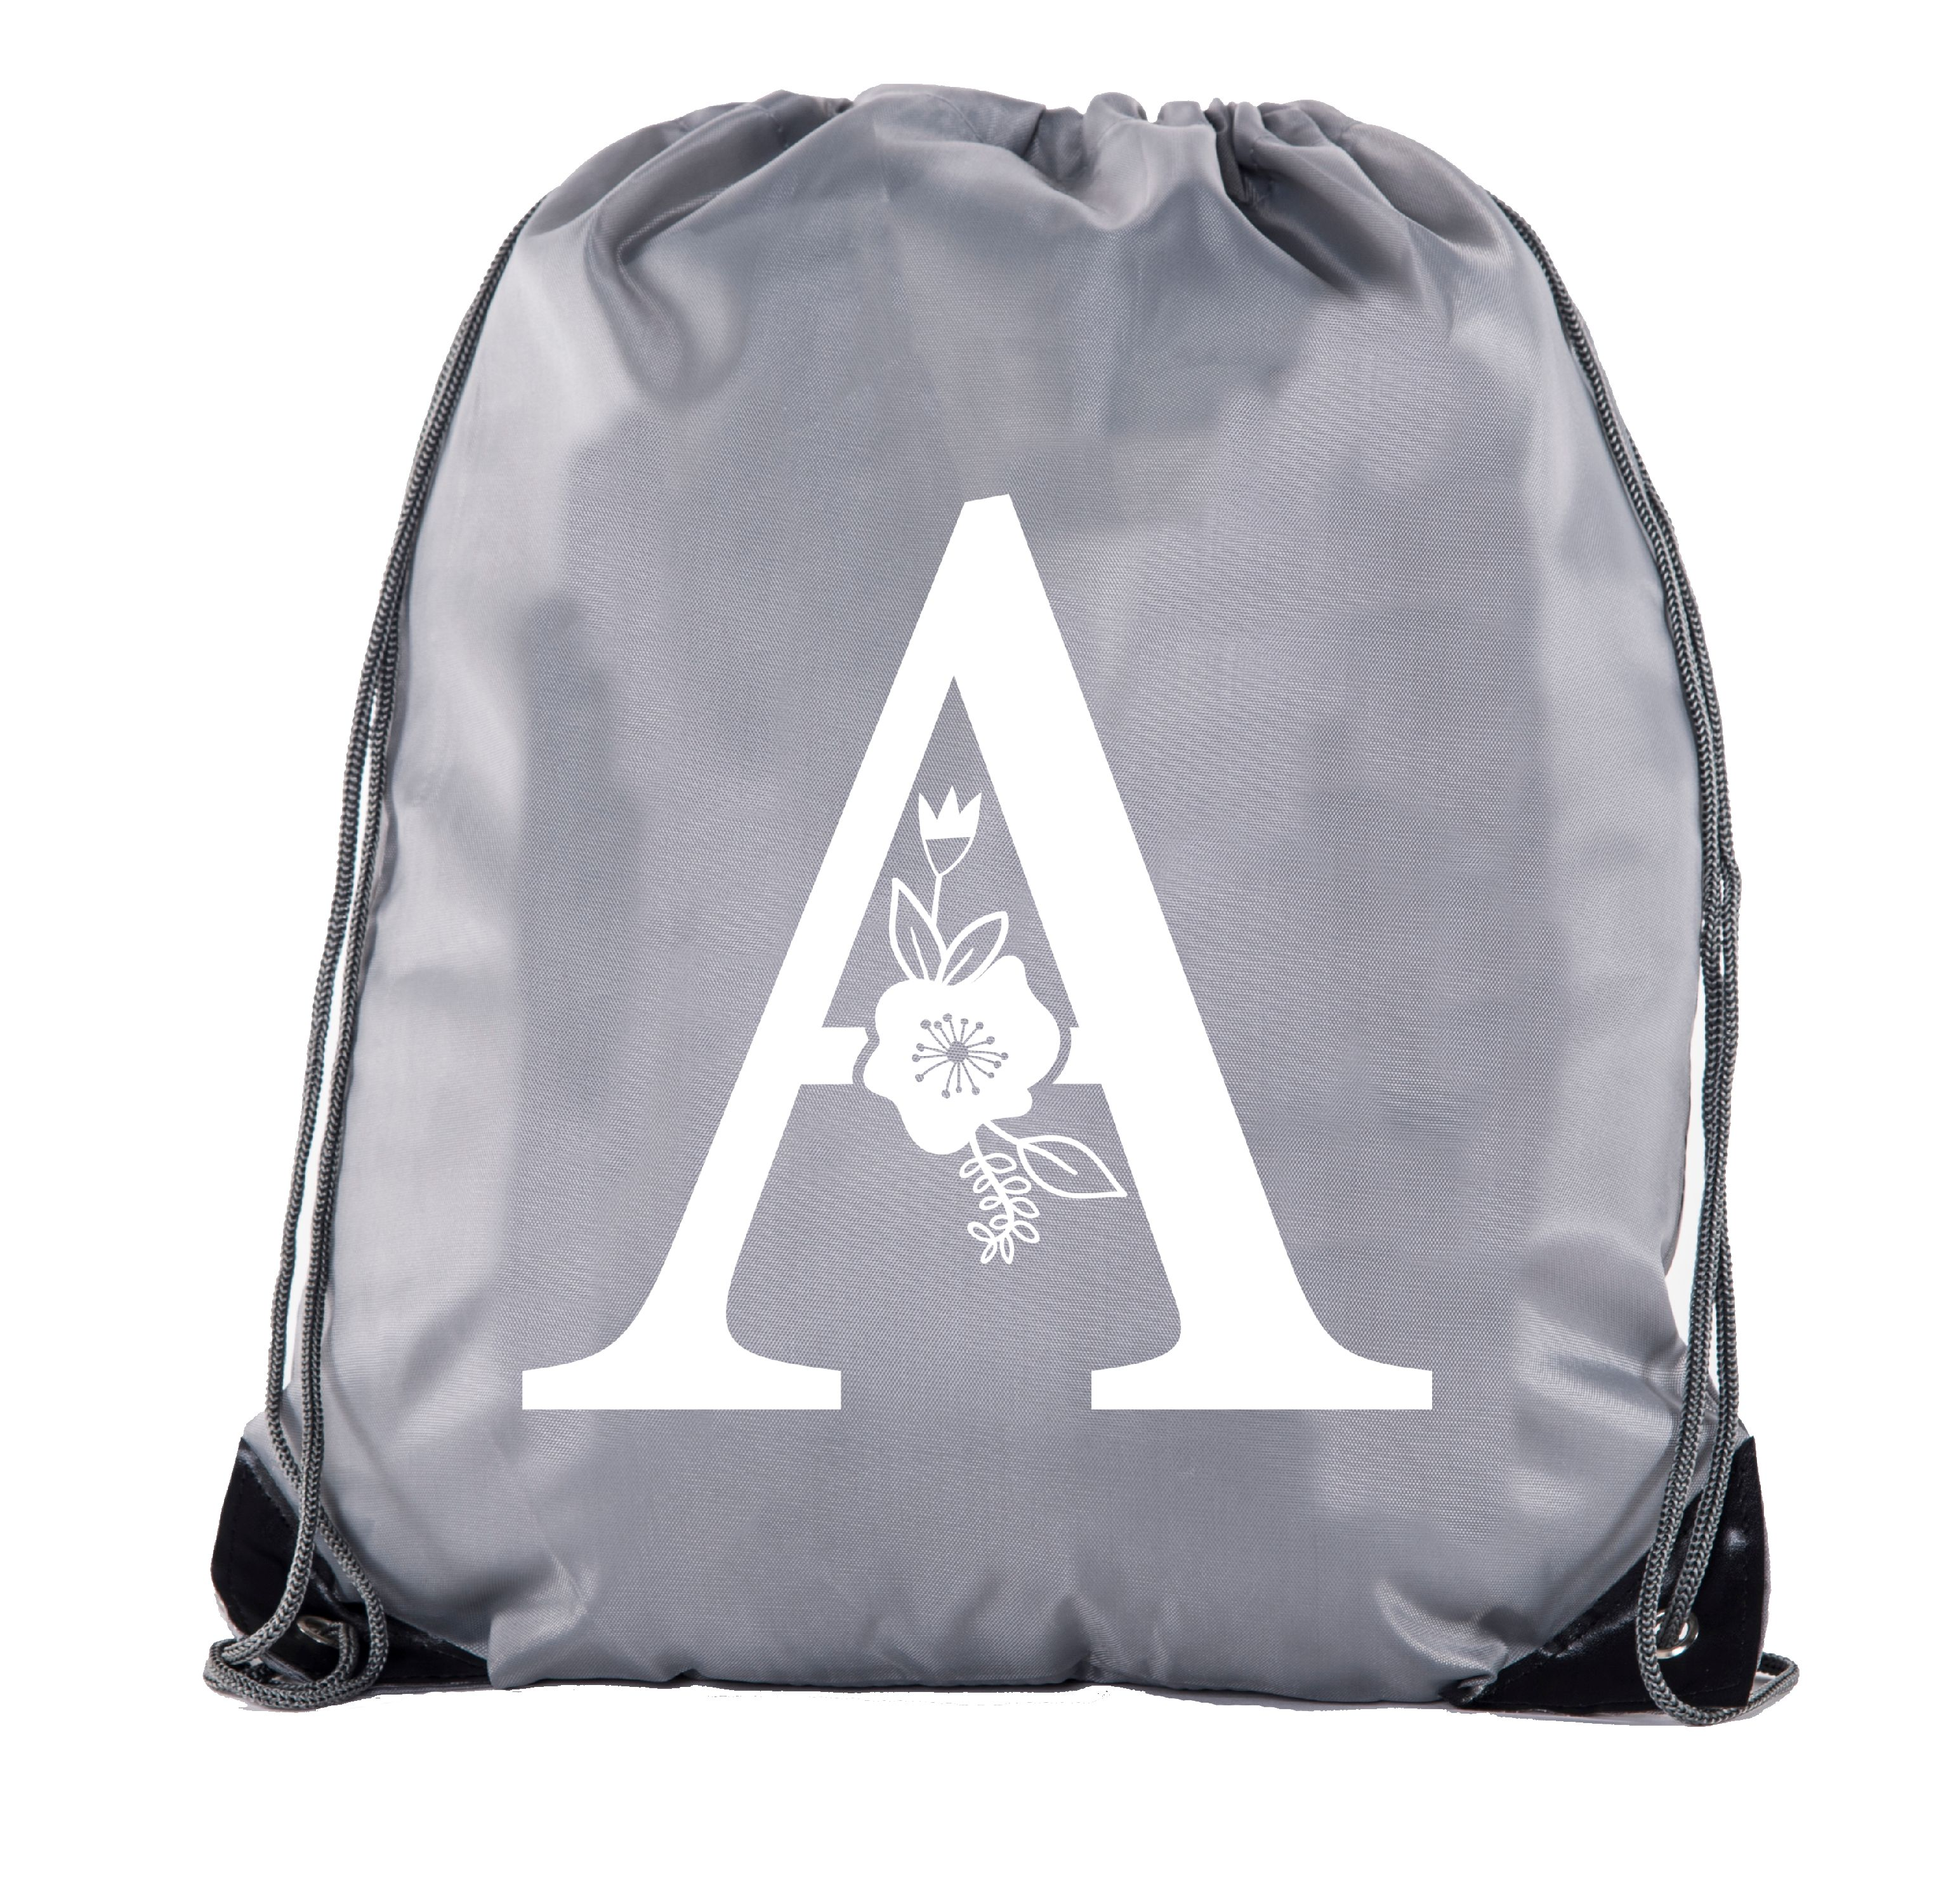 Players String Drawstring Backpack Sinch Fashion Custom Personalized Gift